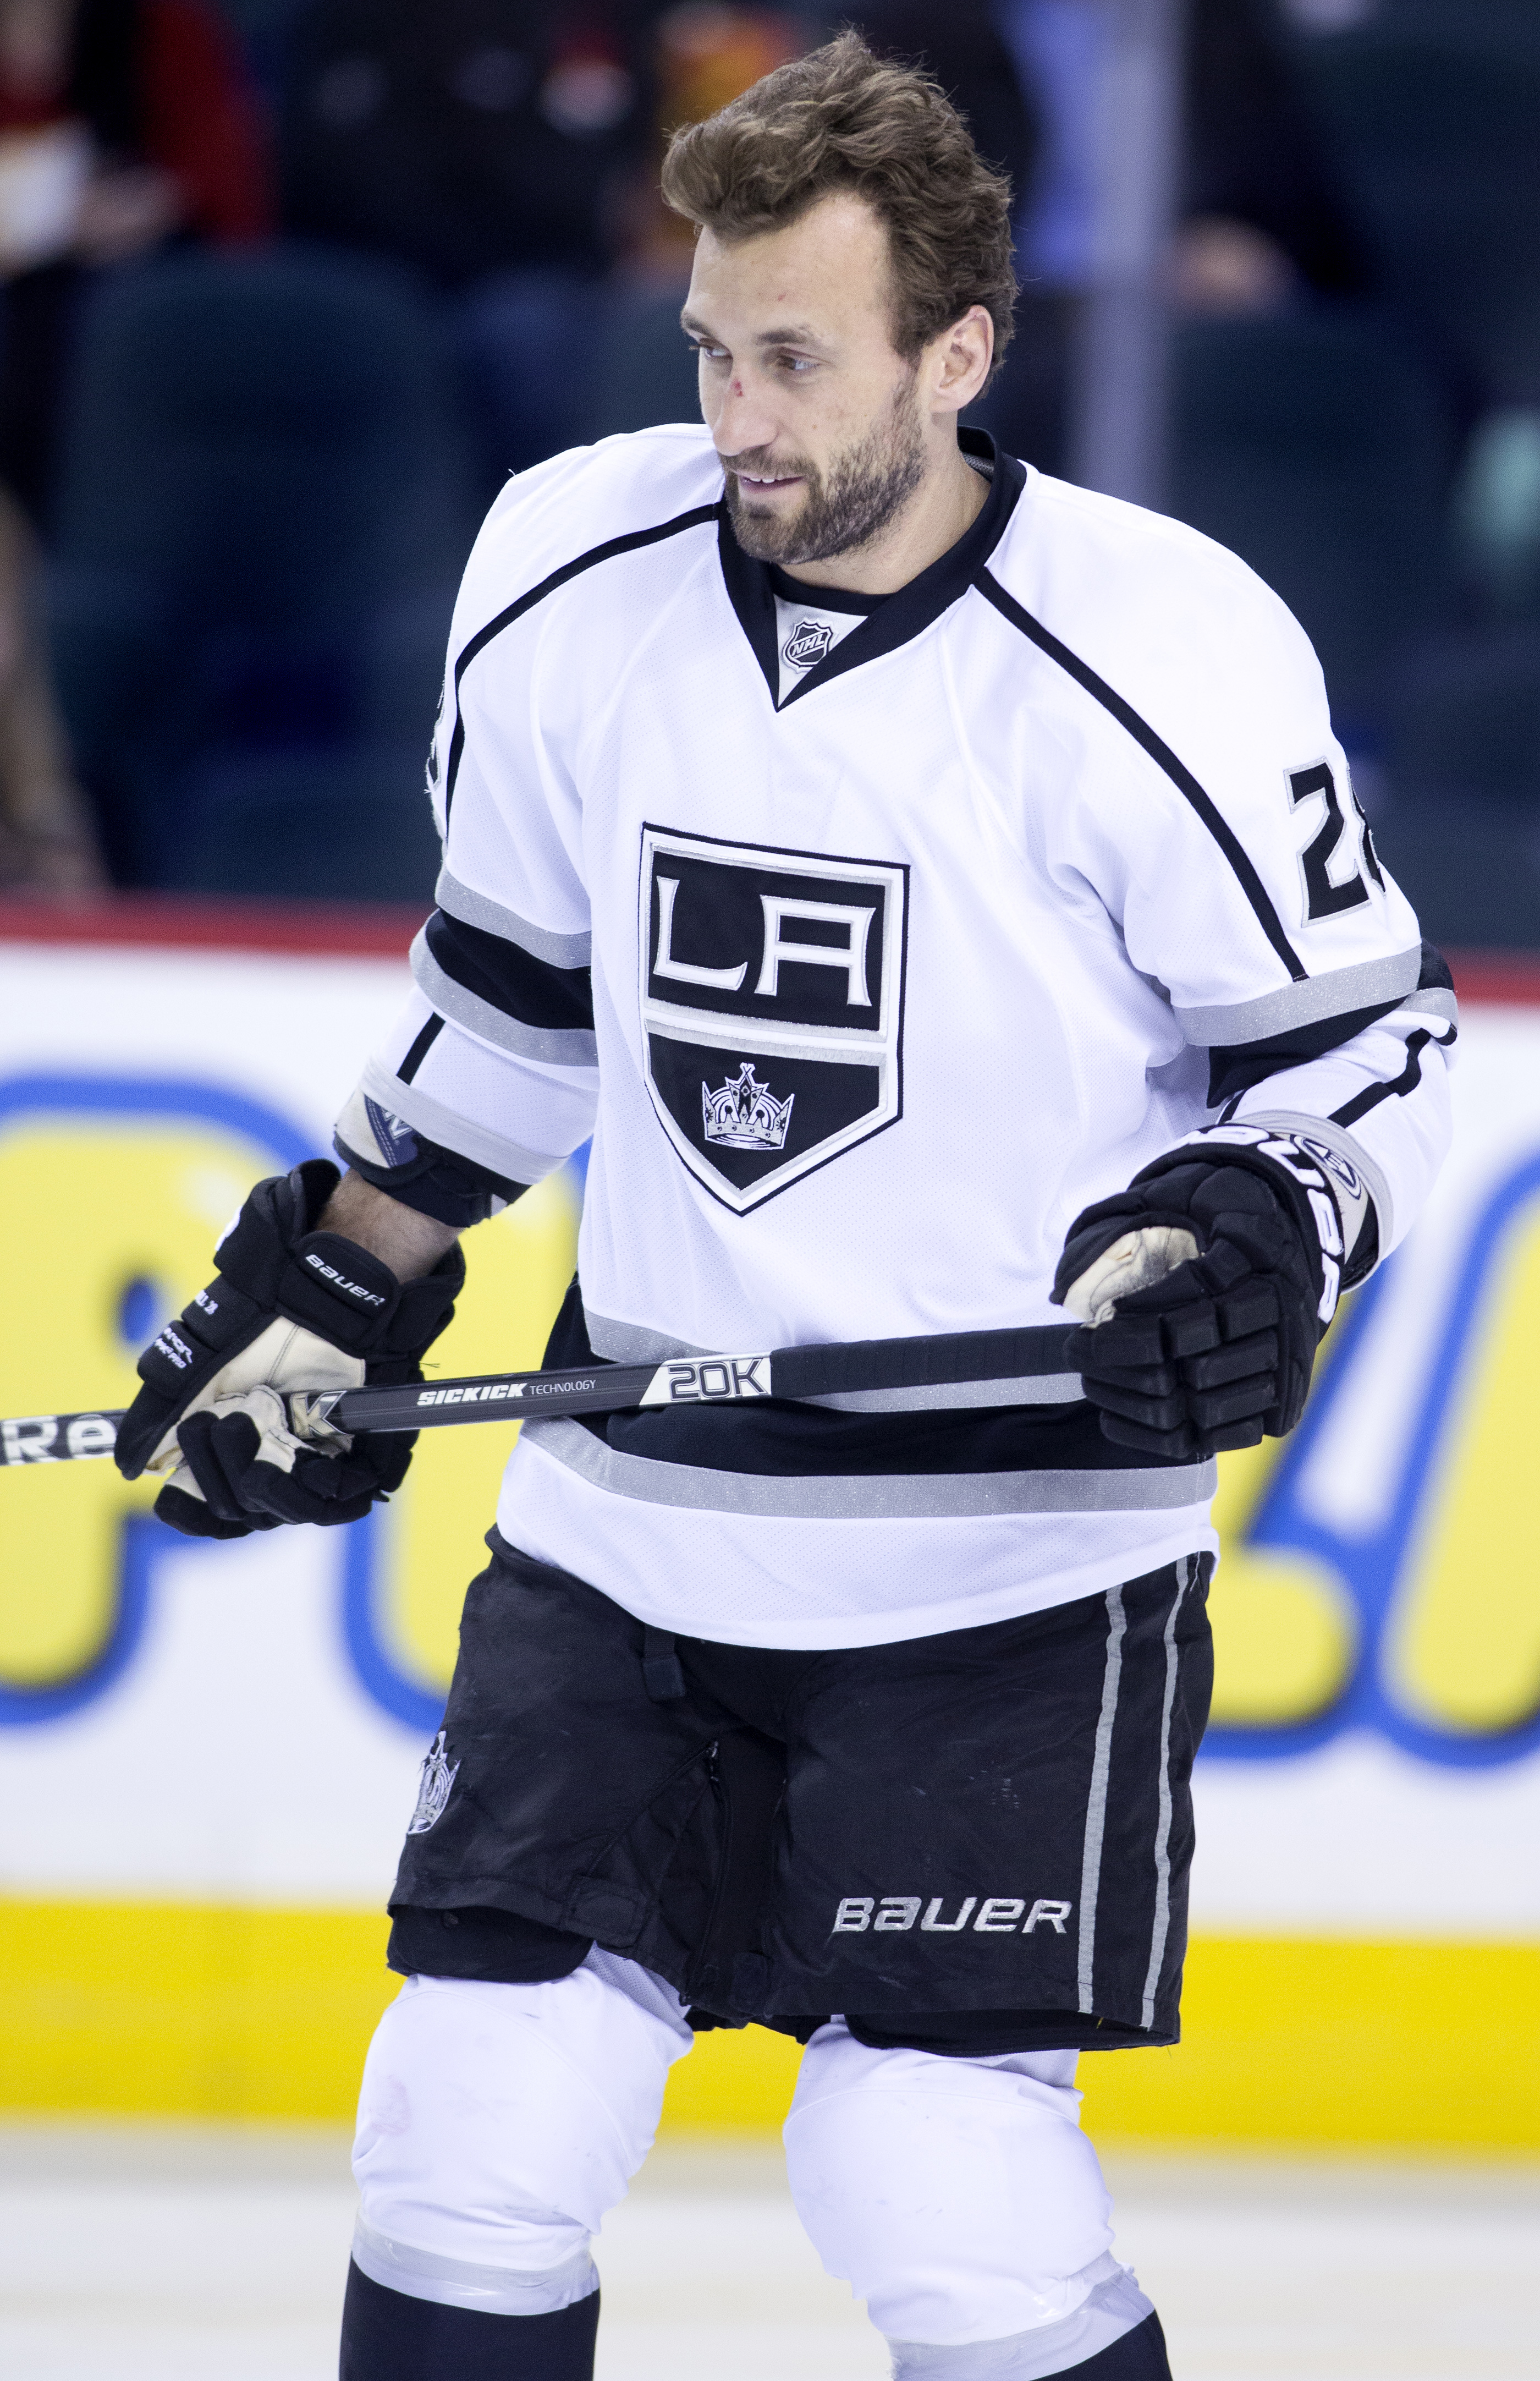 NHL profile photo on Los Angeles Kings' Jarret Stoll during a game against the Calgary Flames in Calgary, Alberta on April 9, 2015.